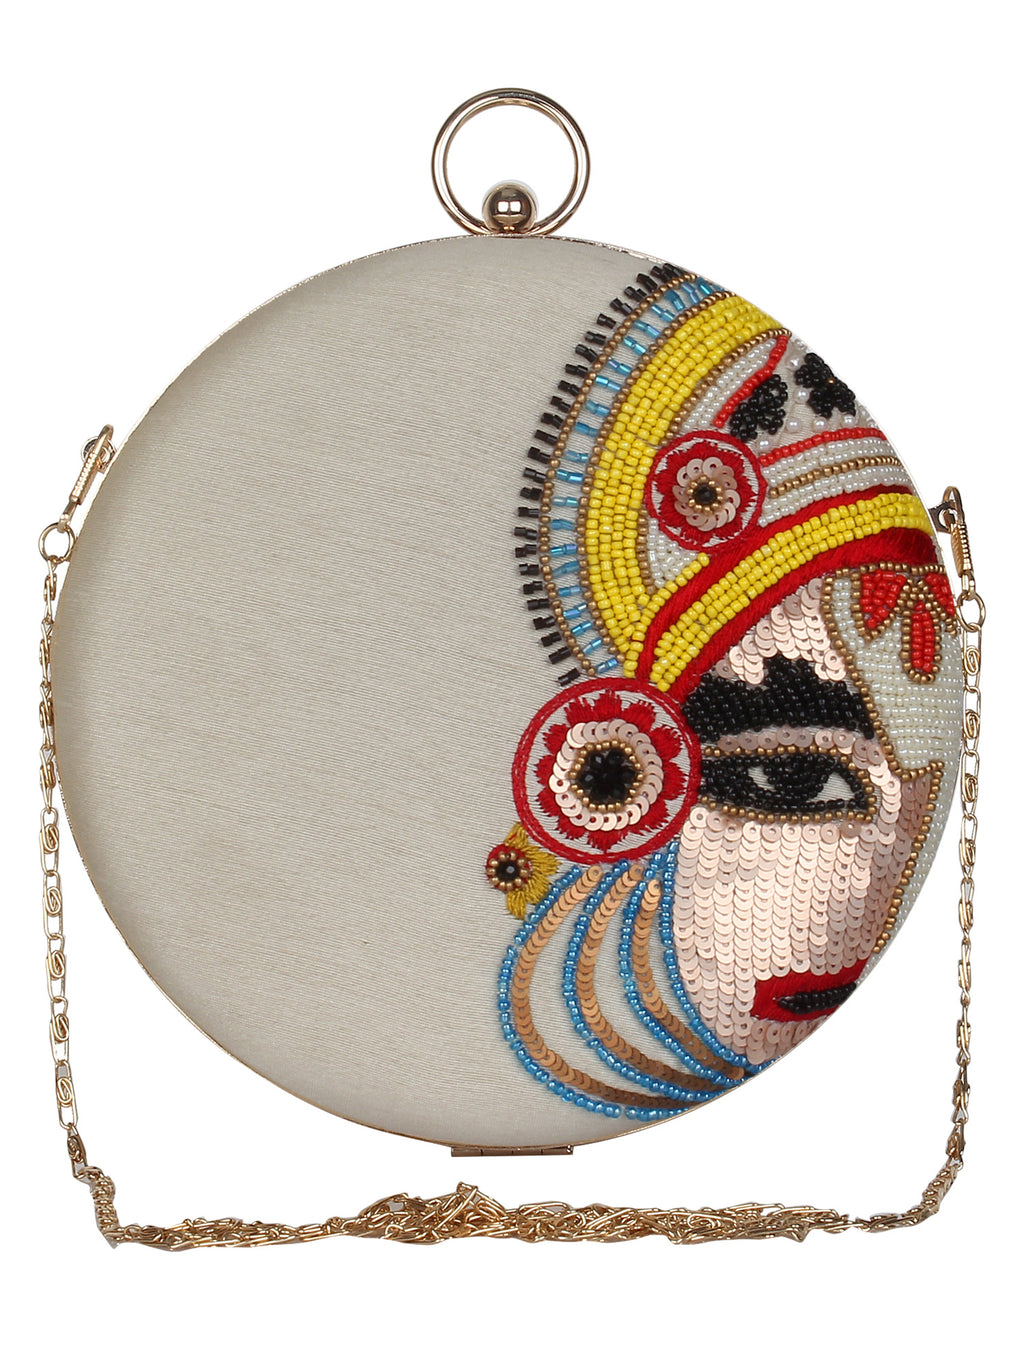 DURGA PURSE